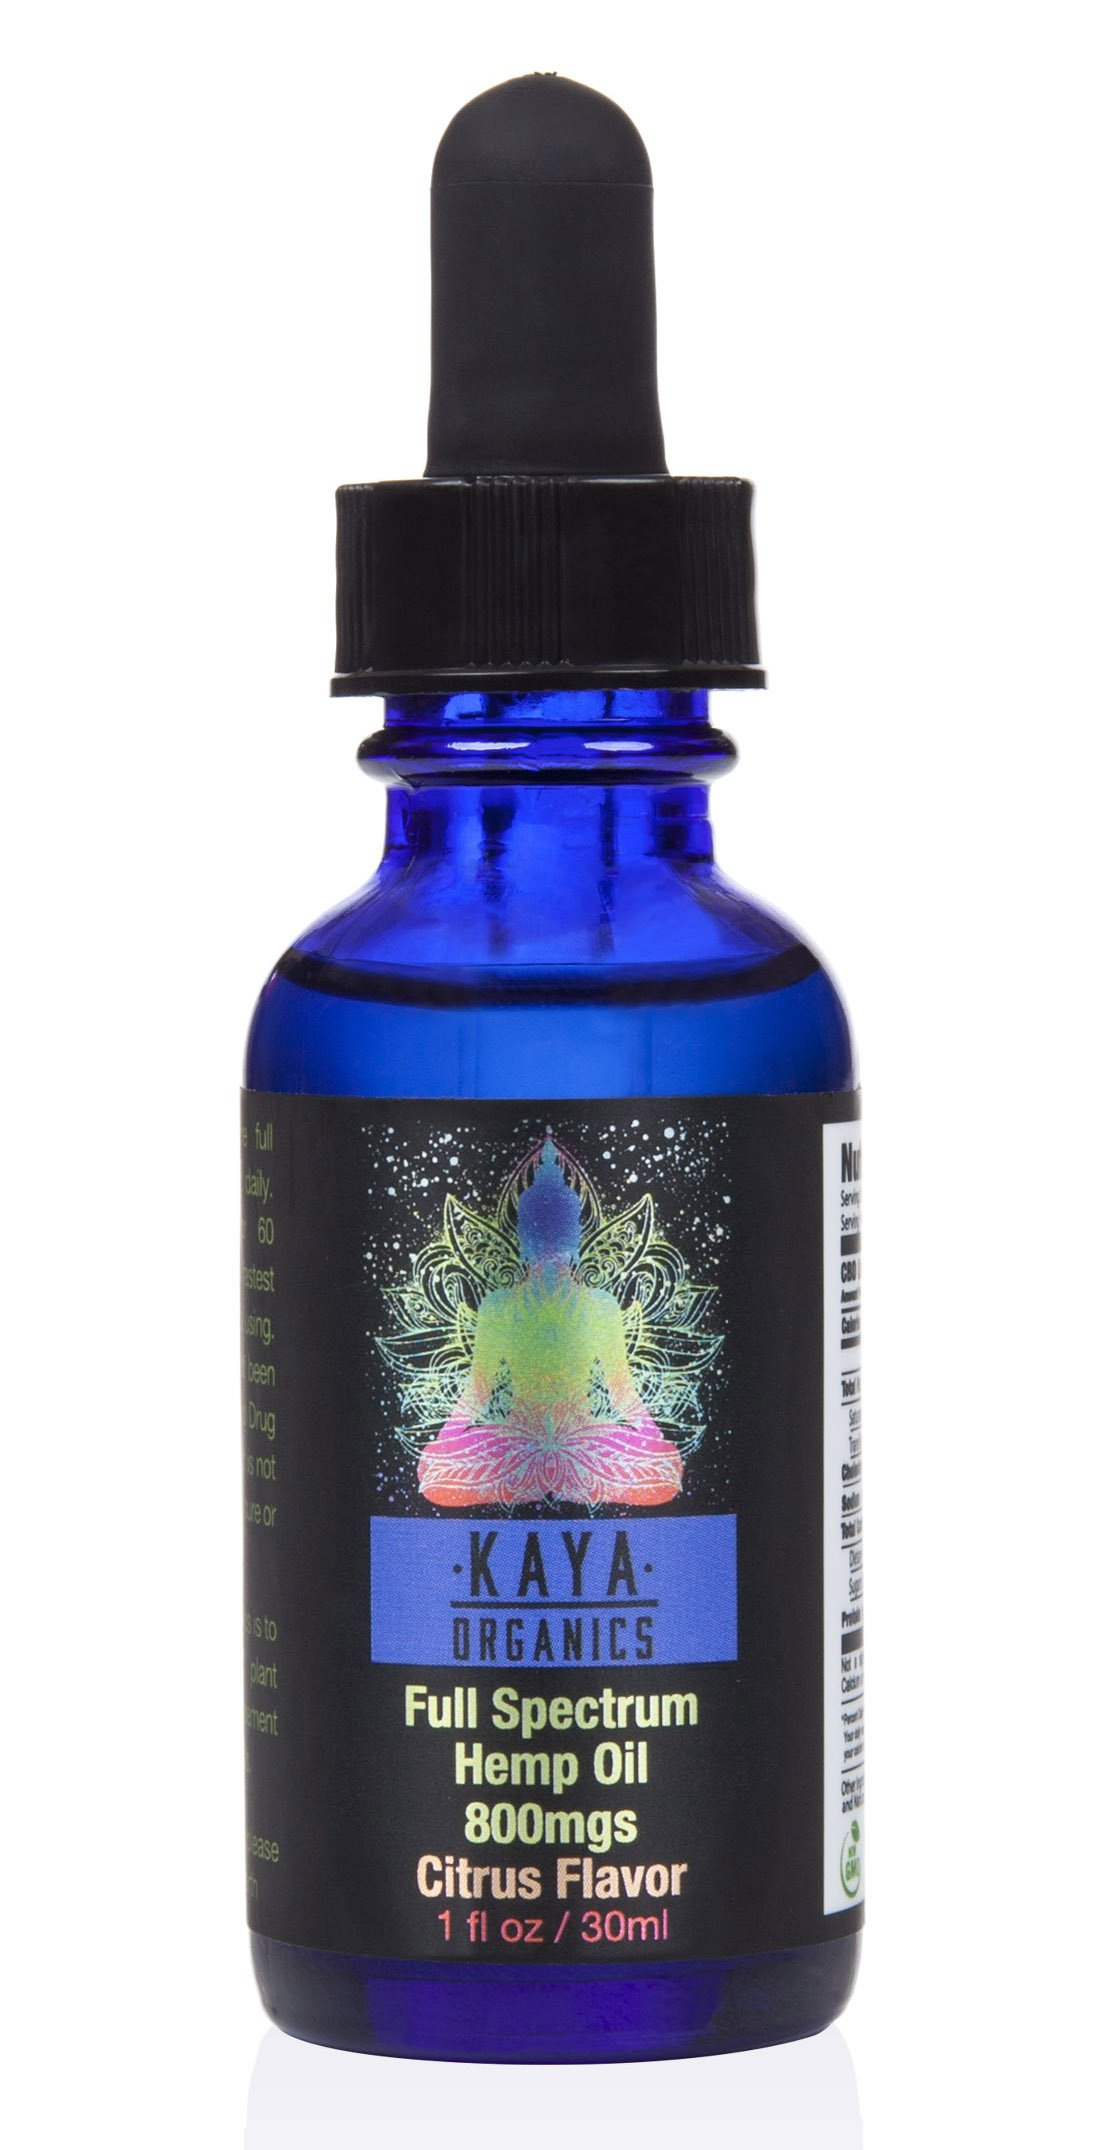 Premium Hemp Oil - 800mg - Full-Spectrum Organic Hemp Oil For Pain, Anxiety, Stress, Inflammation, and Overall Health and Wellness - VETERAN OWNED AND OPERATED - By Kaya Organics